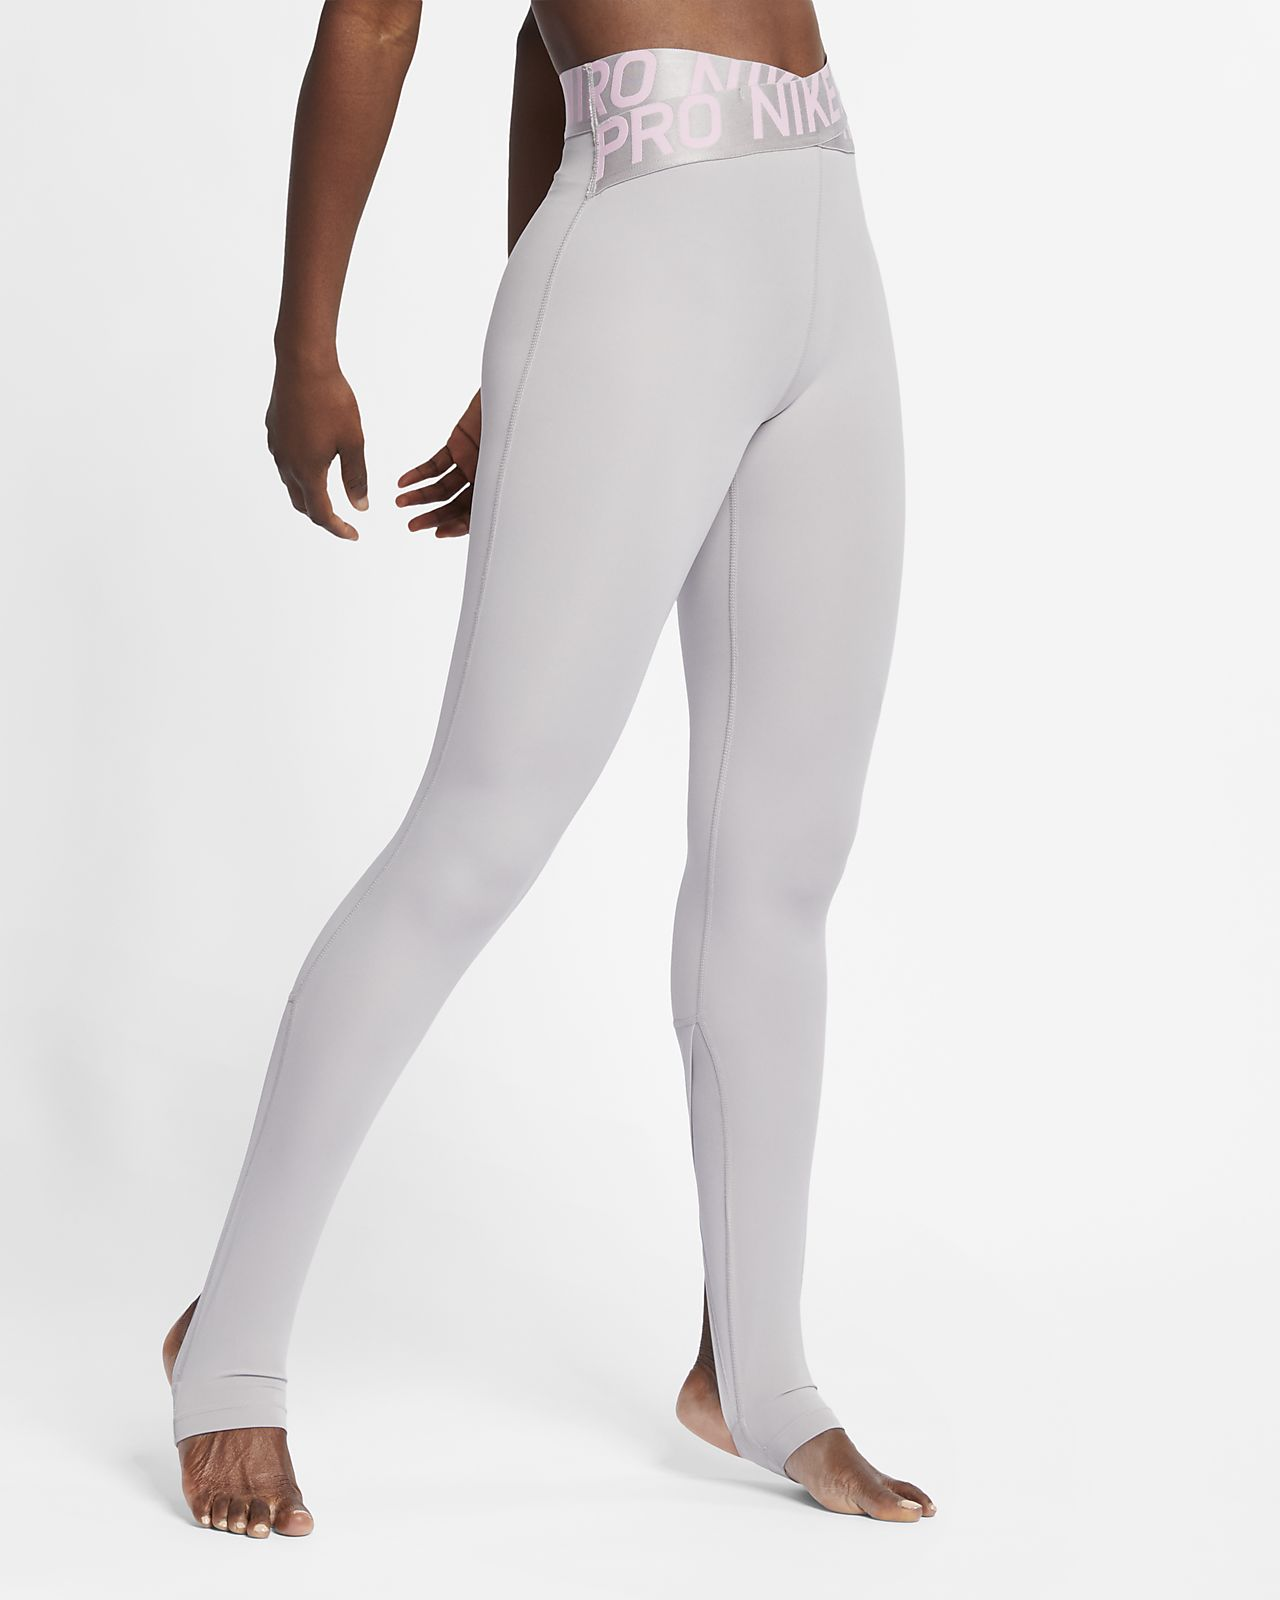 e5a470041350f Nike Pro Intertwist Women s Tights. Nike.com IE